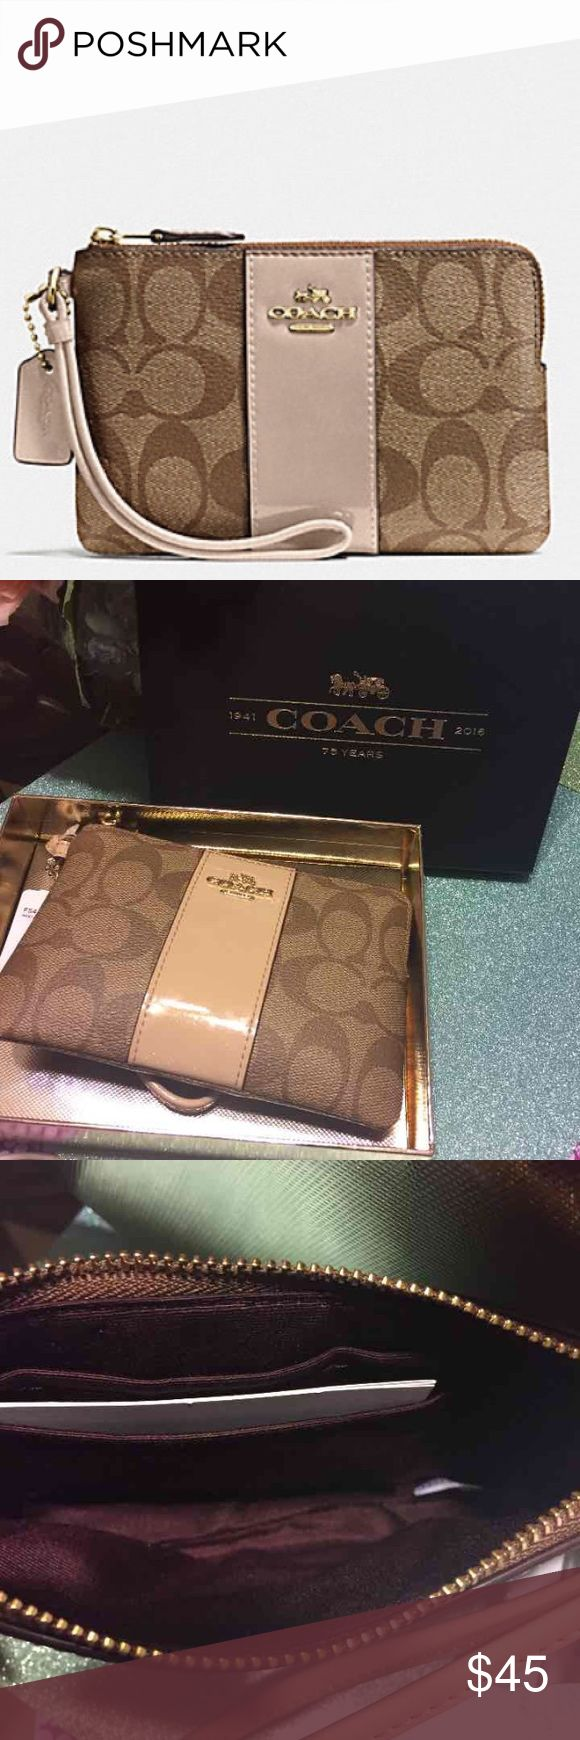 """COACH WOMEN WRISTLET IN SIGNATURE BOXED CORNER ZIP WRISTLET IN SIGNATURE COACH F54460 KHAKI PLATINUM Details Signature coated canvas Zip closure, fabric lining Credit card pockets Wrist strap attached 6 1/4"""" (L) x 4"""" (H) Packaged in a Coach gift box  COACH MSRP:$85 Coach Bags Wallets"""